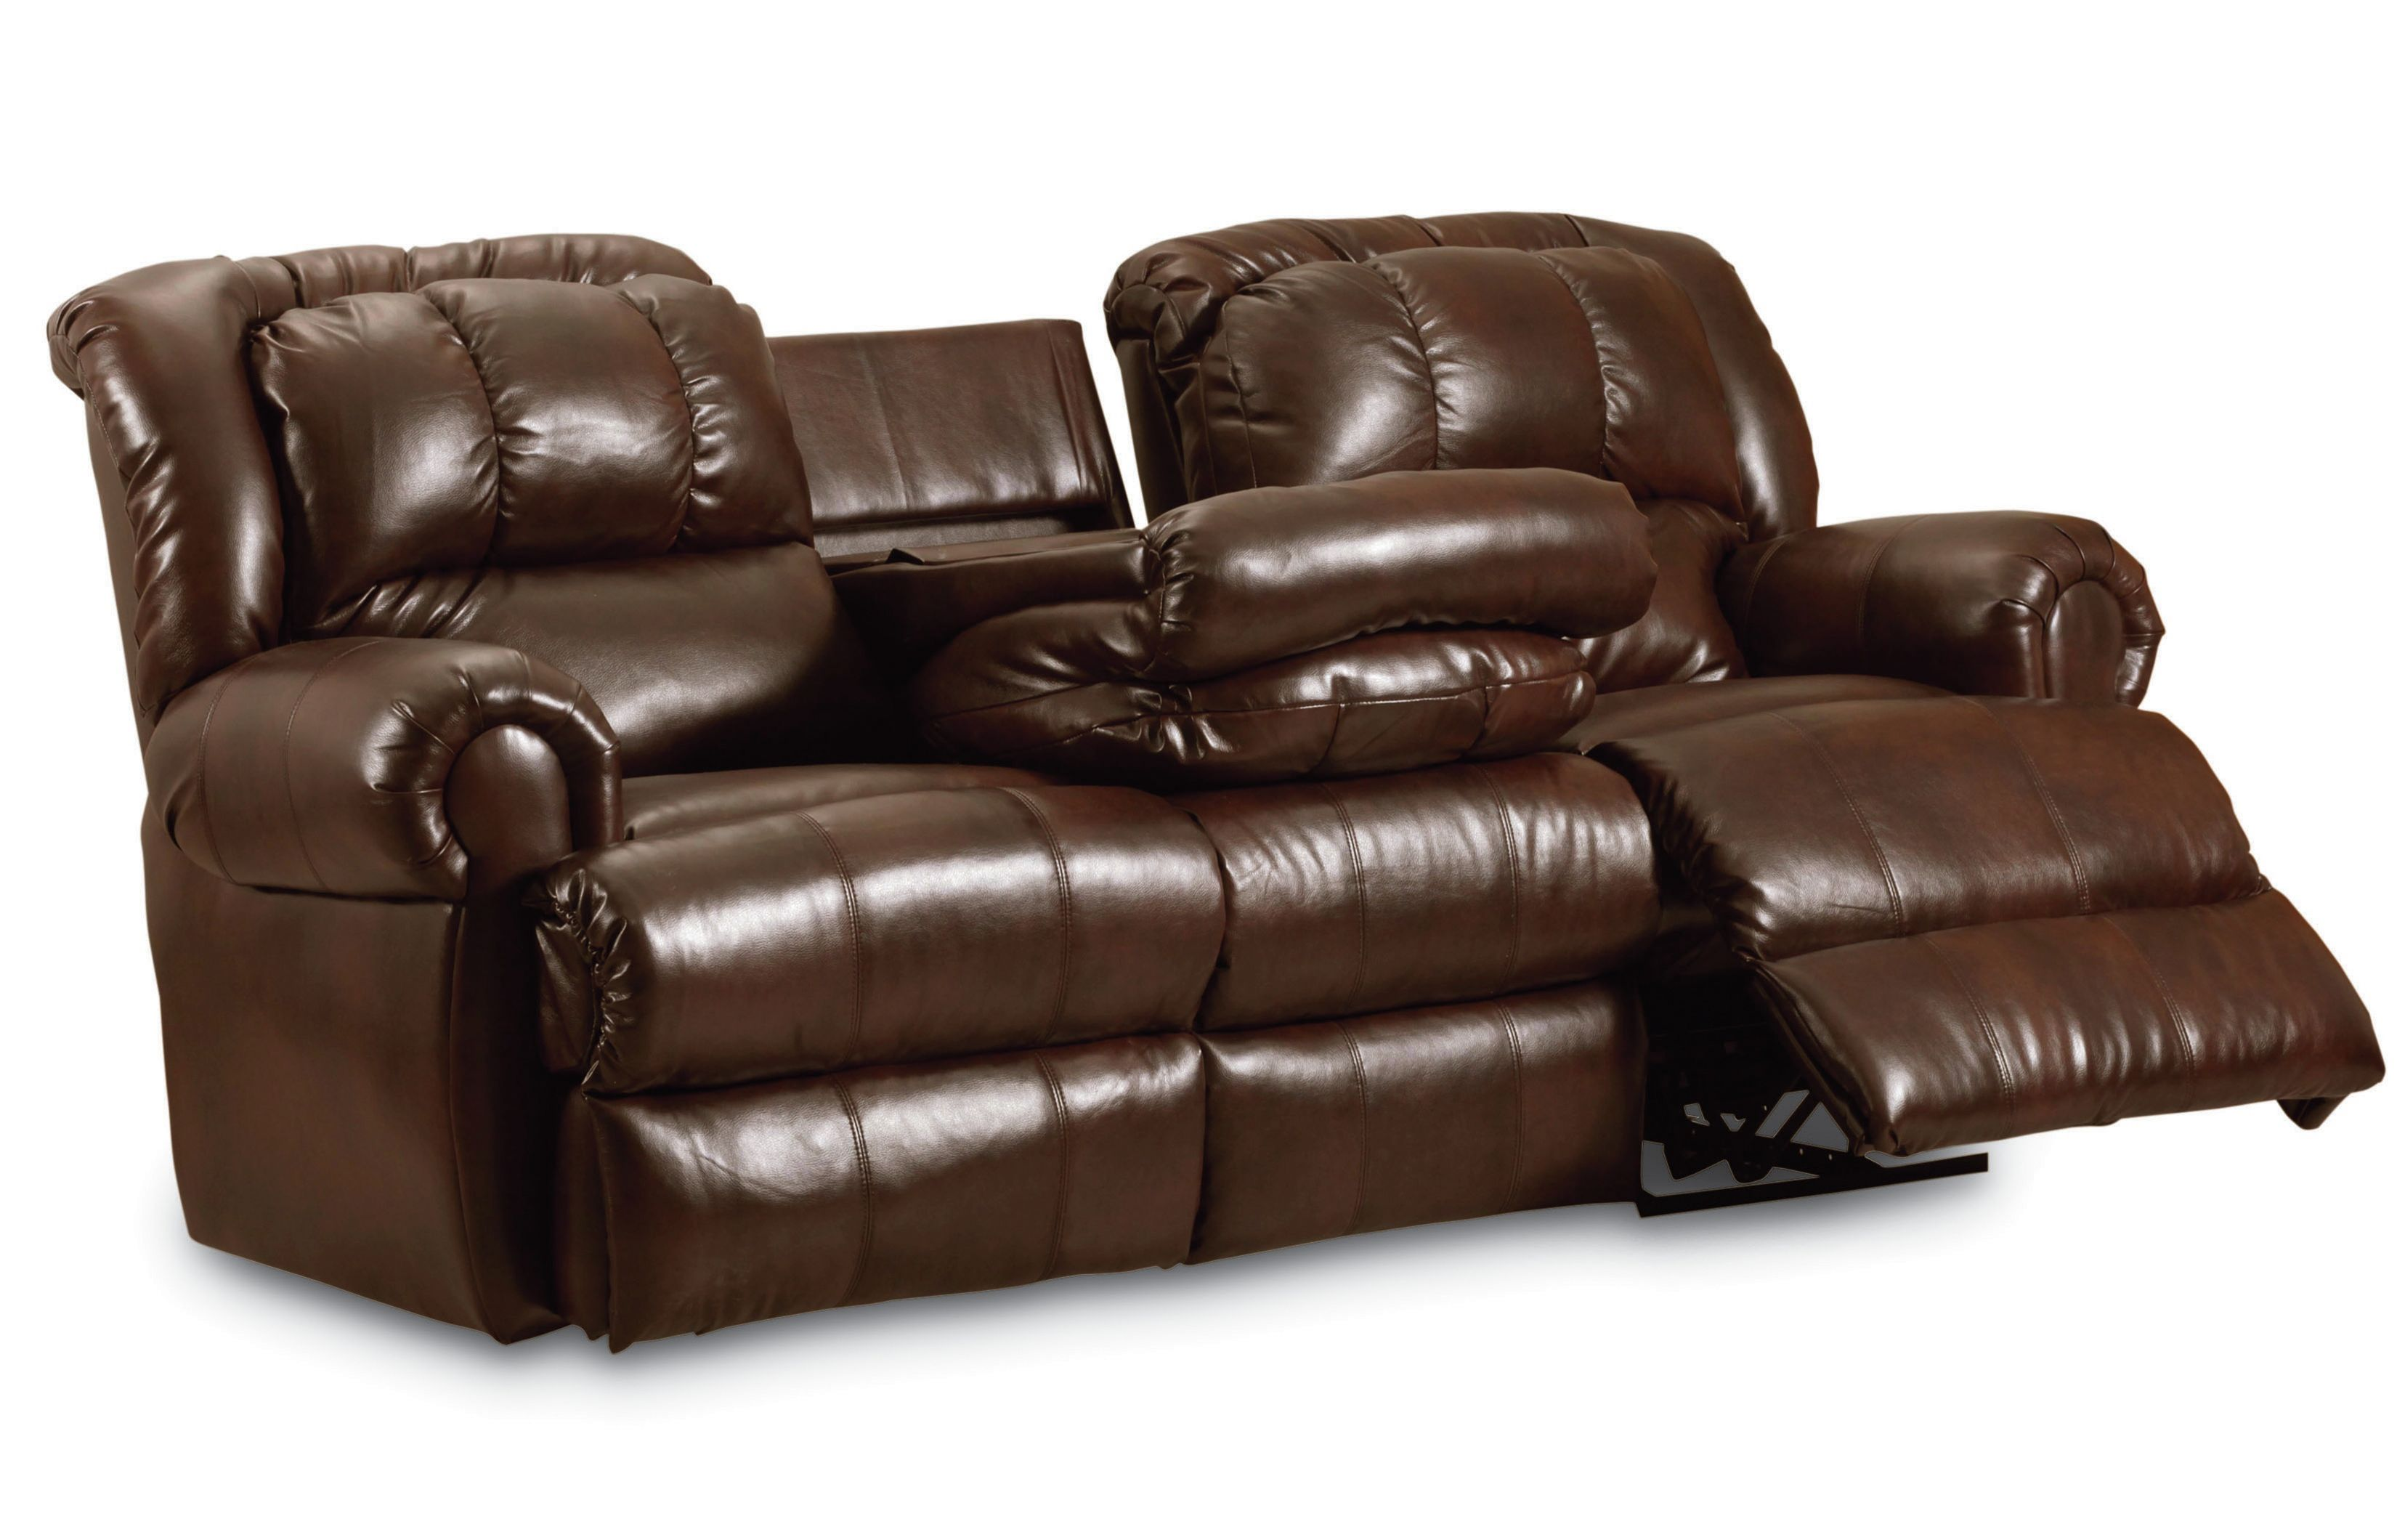 Fold Down Couch Relax In Living Room Homesfeed ~ Dual Reclining Sofa With Drop Down Table